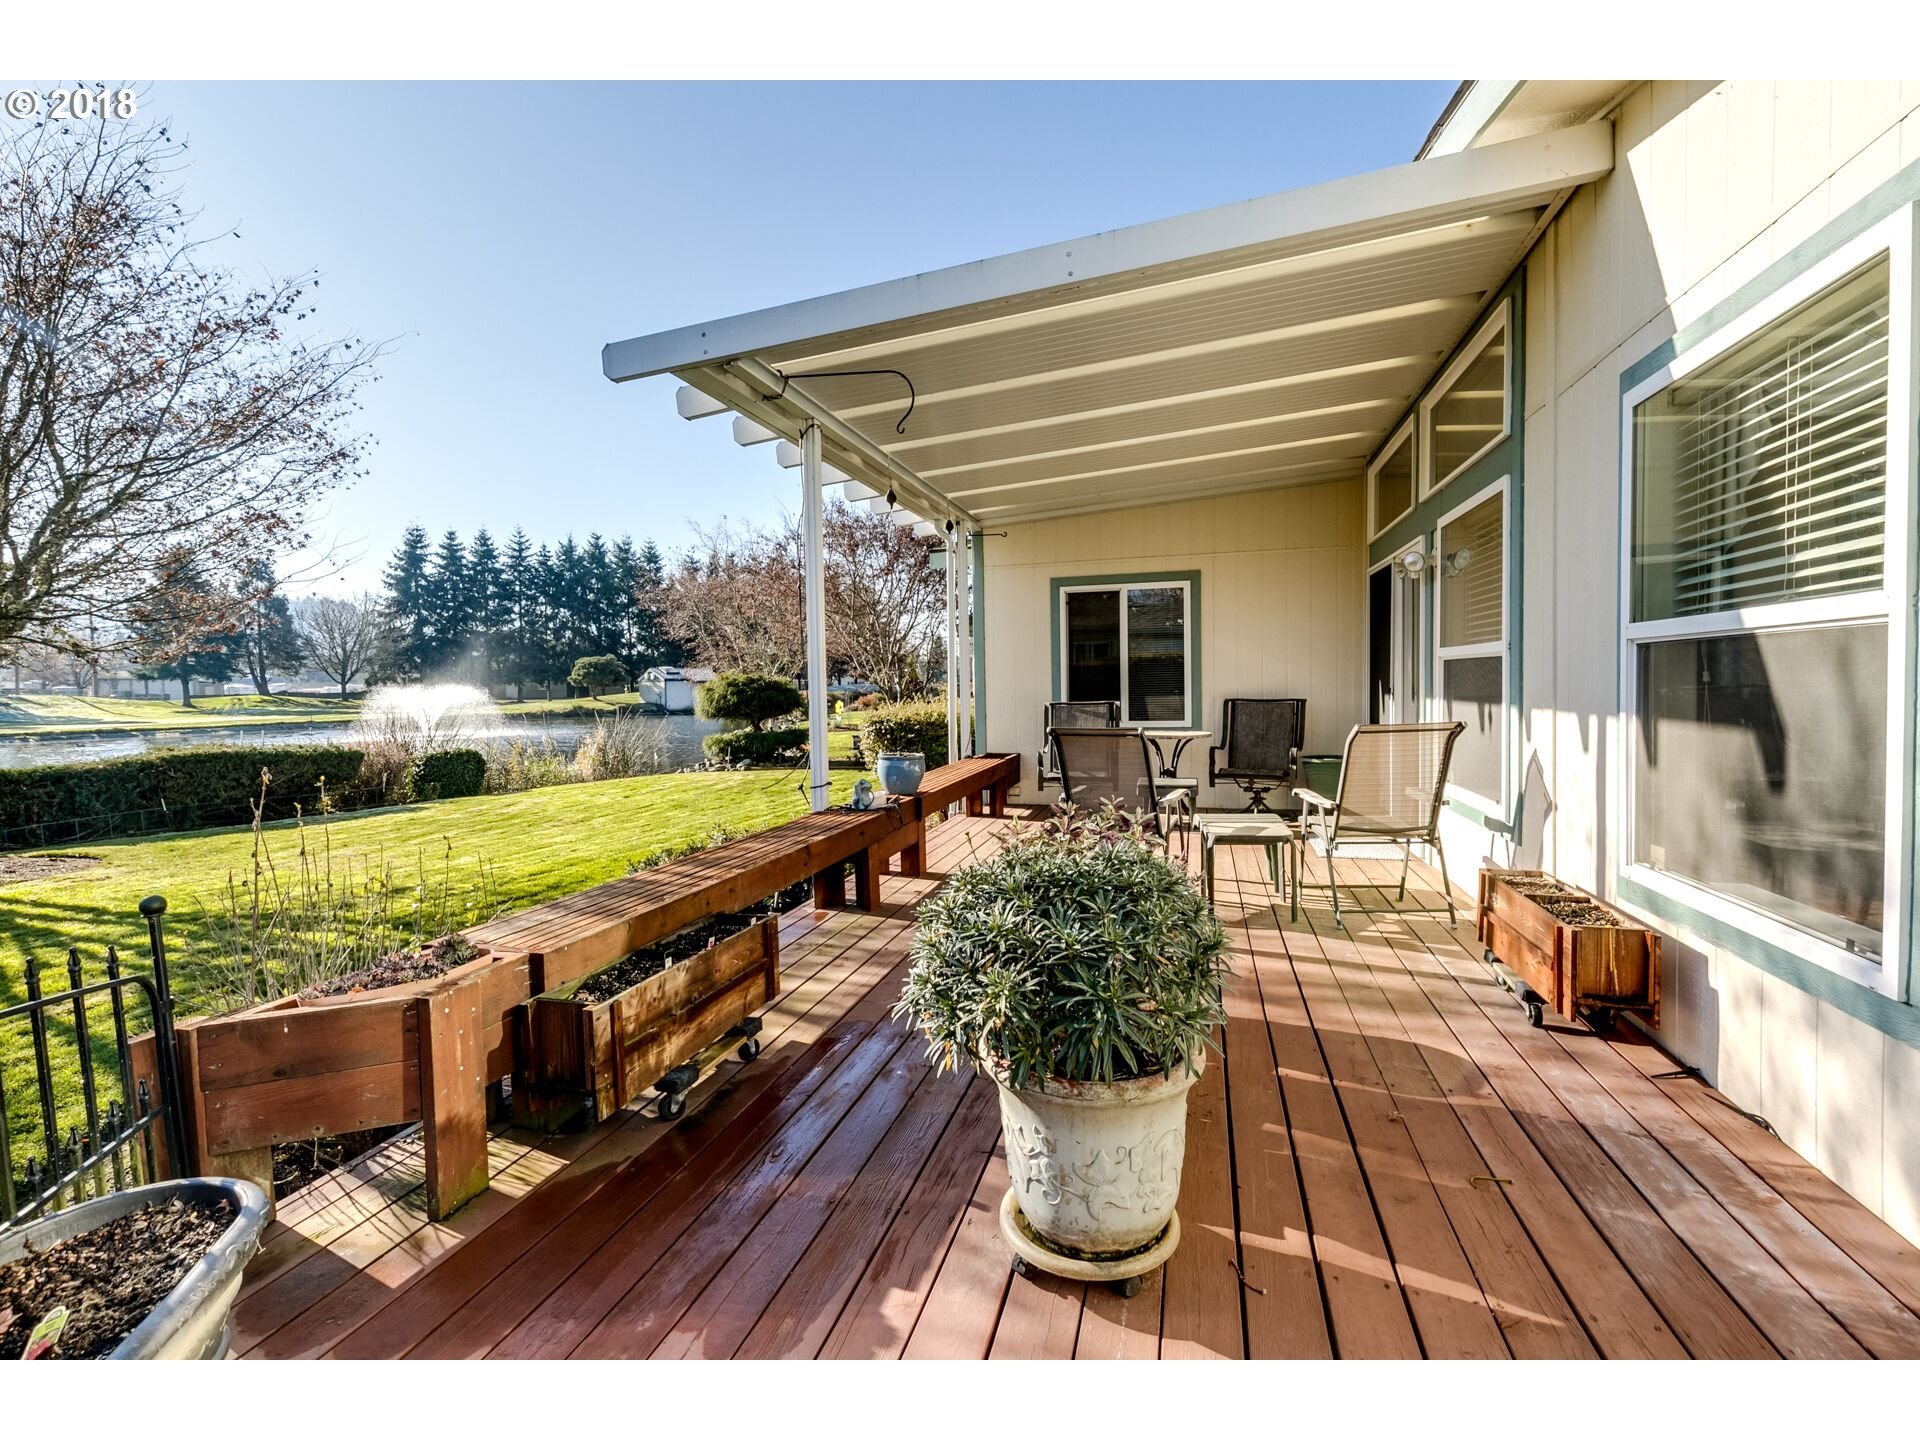 113 ANDREW DR Cottage Grove, OR 97424 - MLS #: 18095612